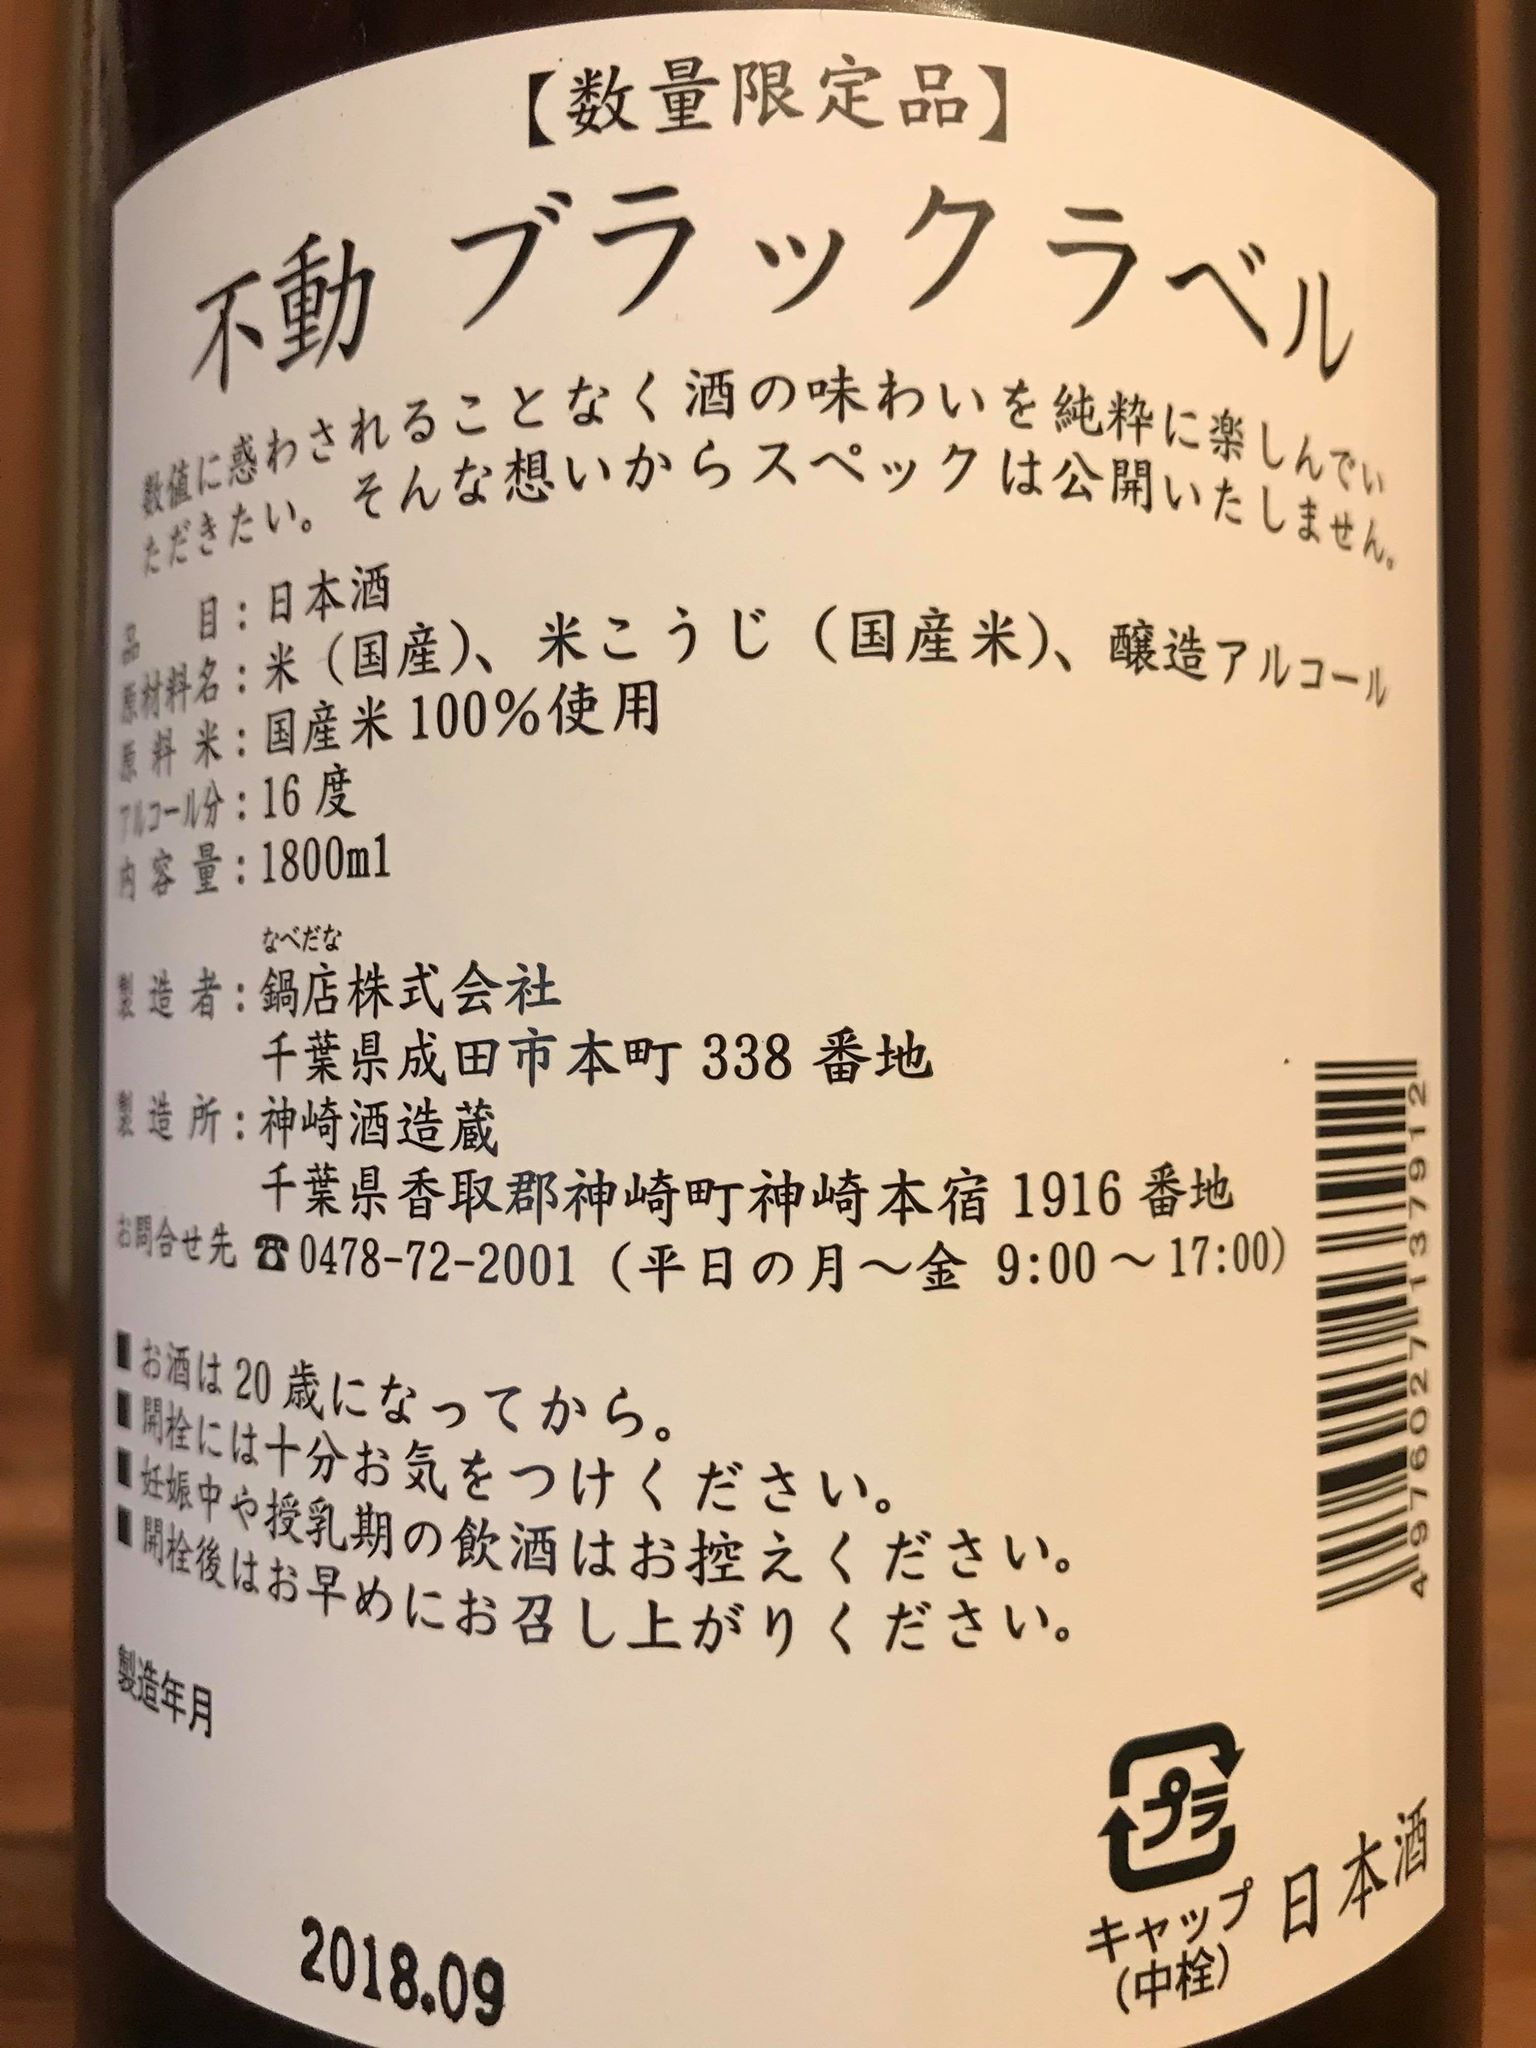 【日本酒】不動 Black Lavel All Star Blend 限定 29BY_e0173738_1329523.jpg